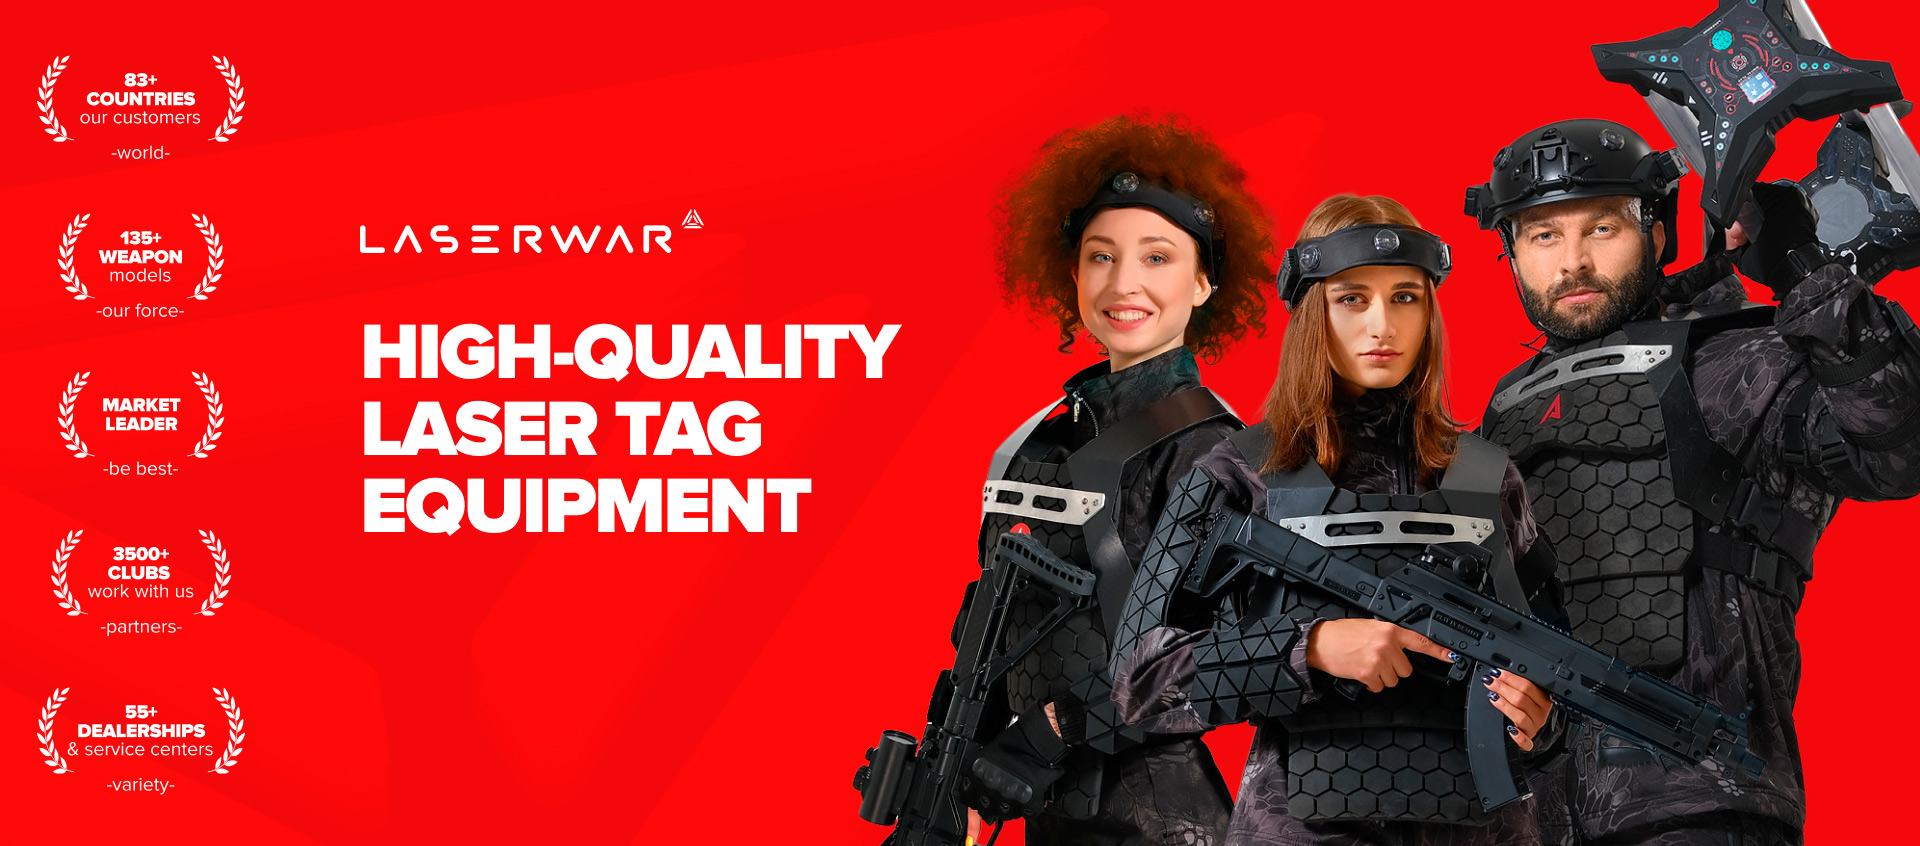 High-quality laser tag equipment